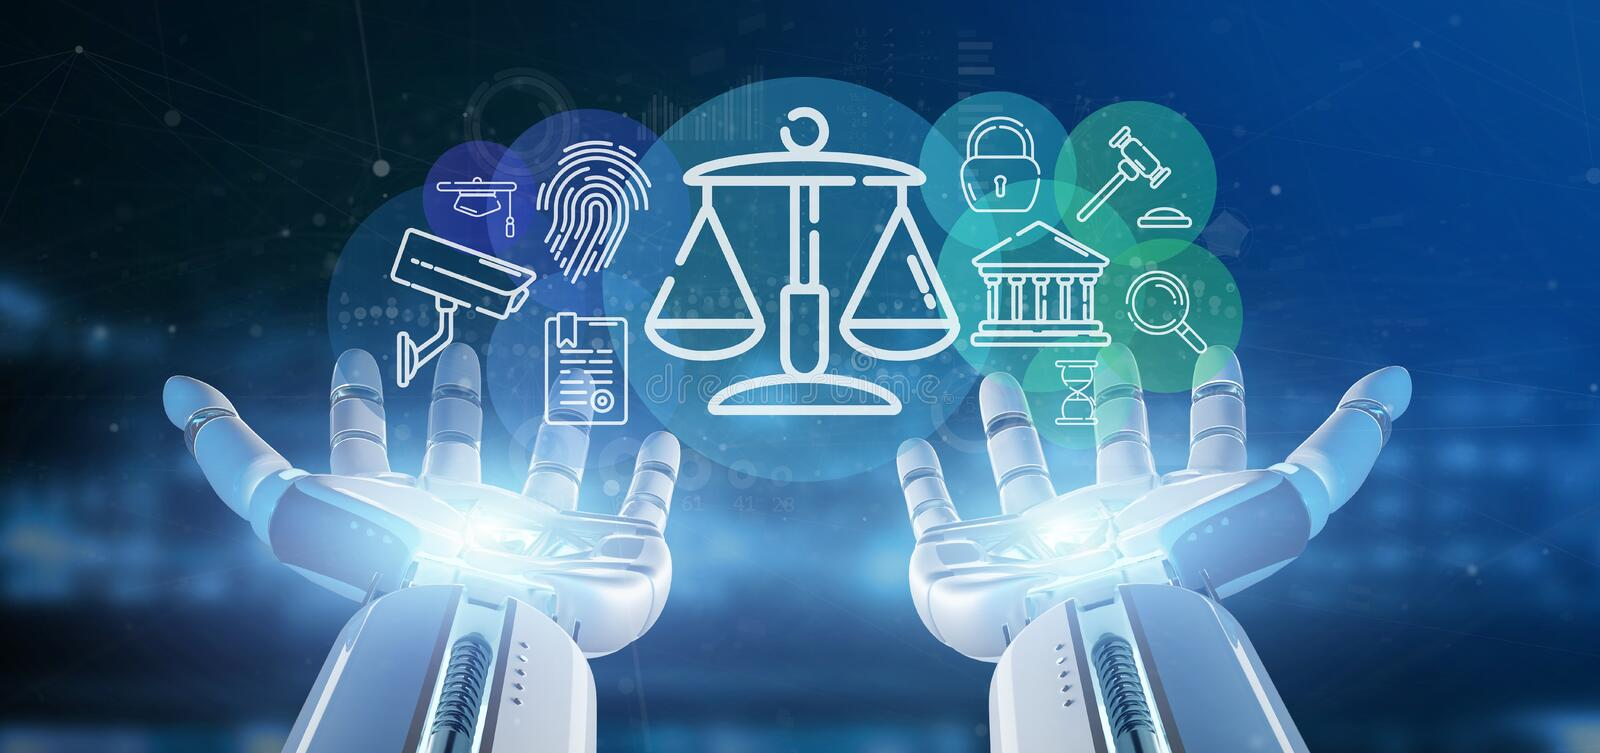 Cyborg hand holding Cloud of justice and law icon bubble with da stock illustration